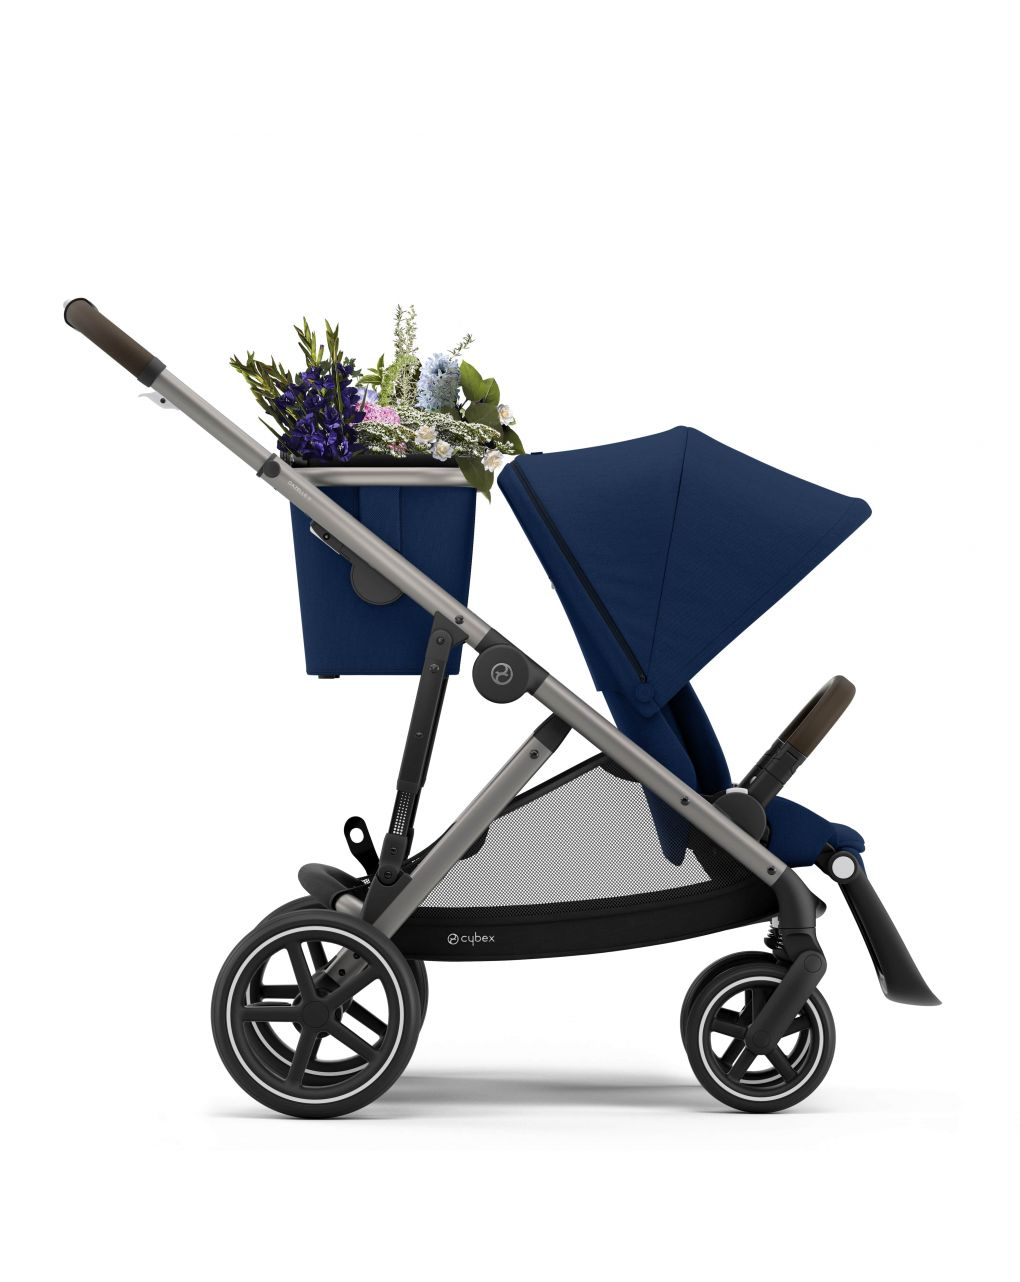 Cybex Gazelle S Βρεφικό Καρότσι - Μπλε - Taupe Chassis